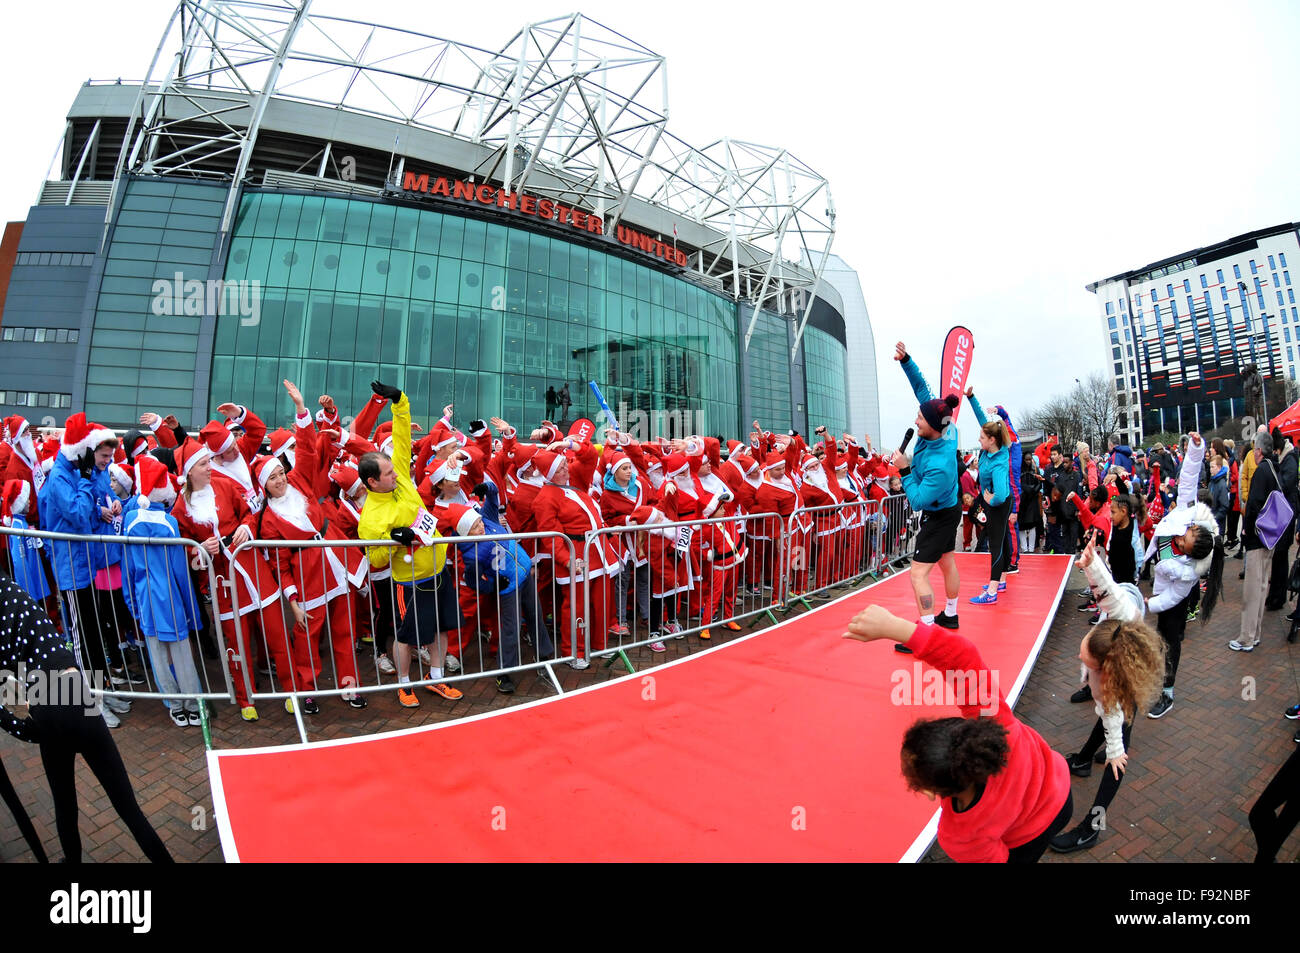 The annual Manchester United Foundation Santa Run, Old Trafford, Manchester. - Stock Image